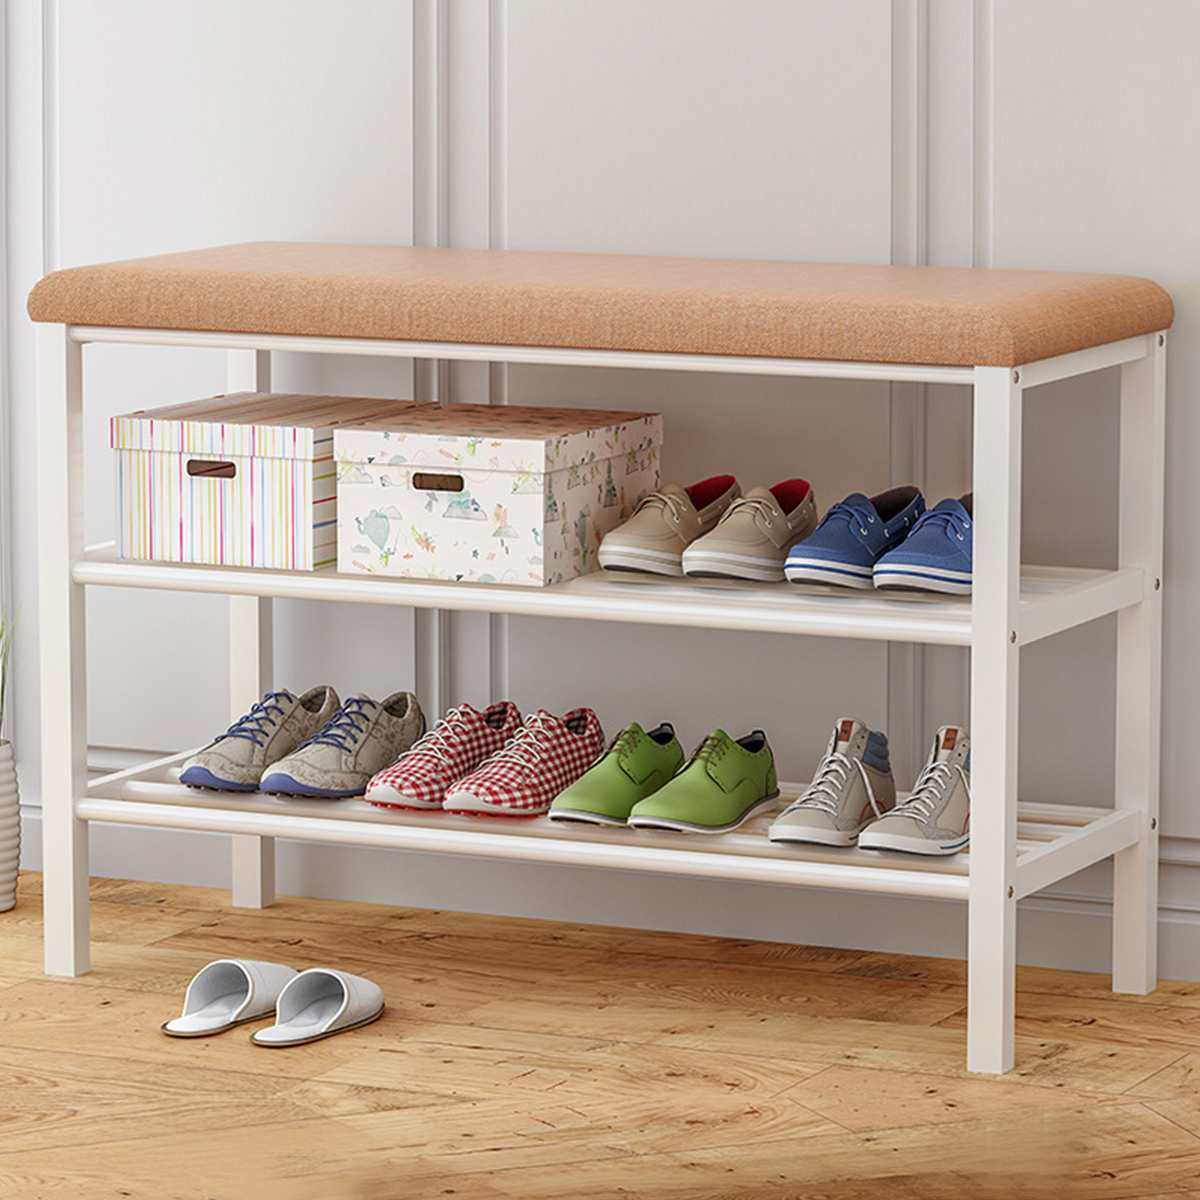 2 Tier Furniture Wood Shoe Bench Storage Stool Fabric Sofa Living Room Shoe Rack Shoe Organizer Cabinet Hallway Seat Chair Shelf